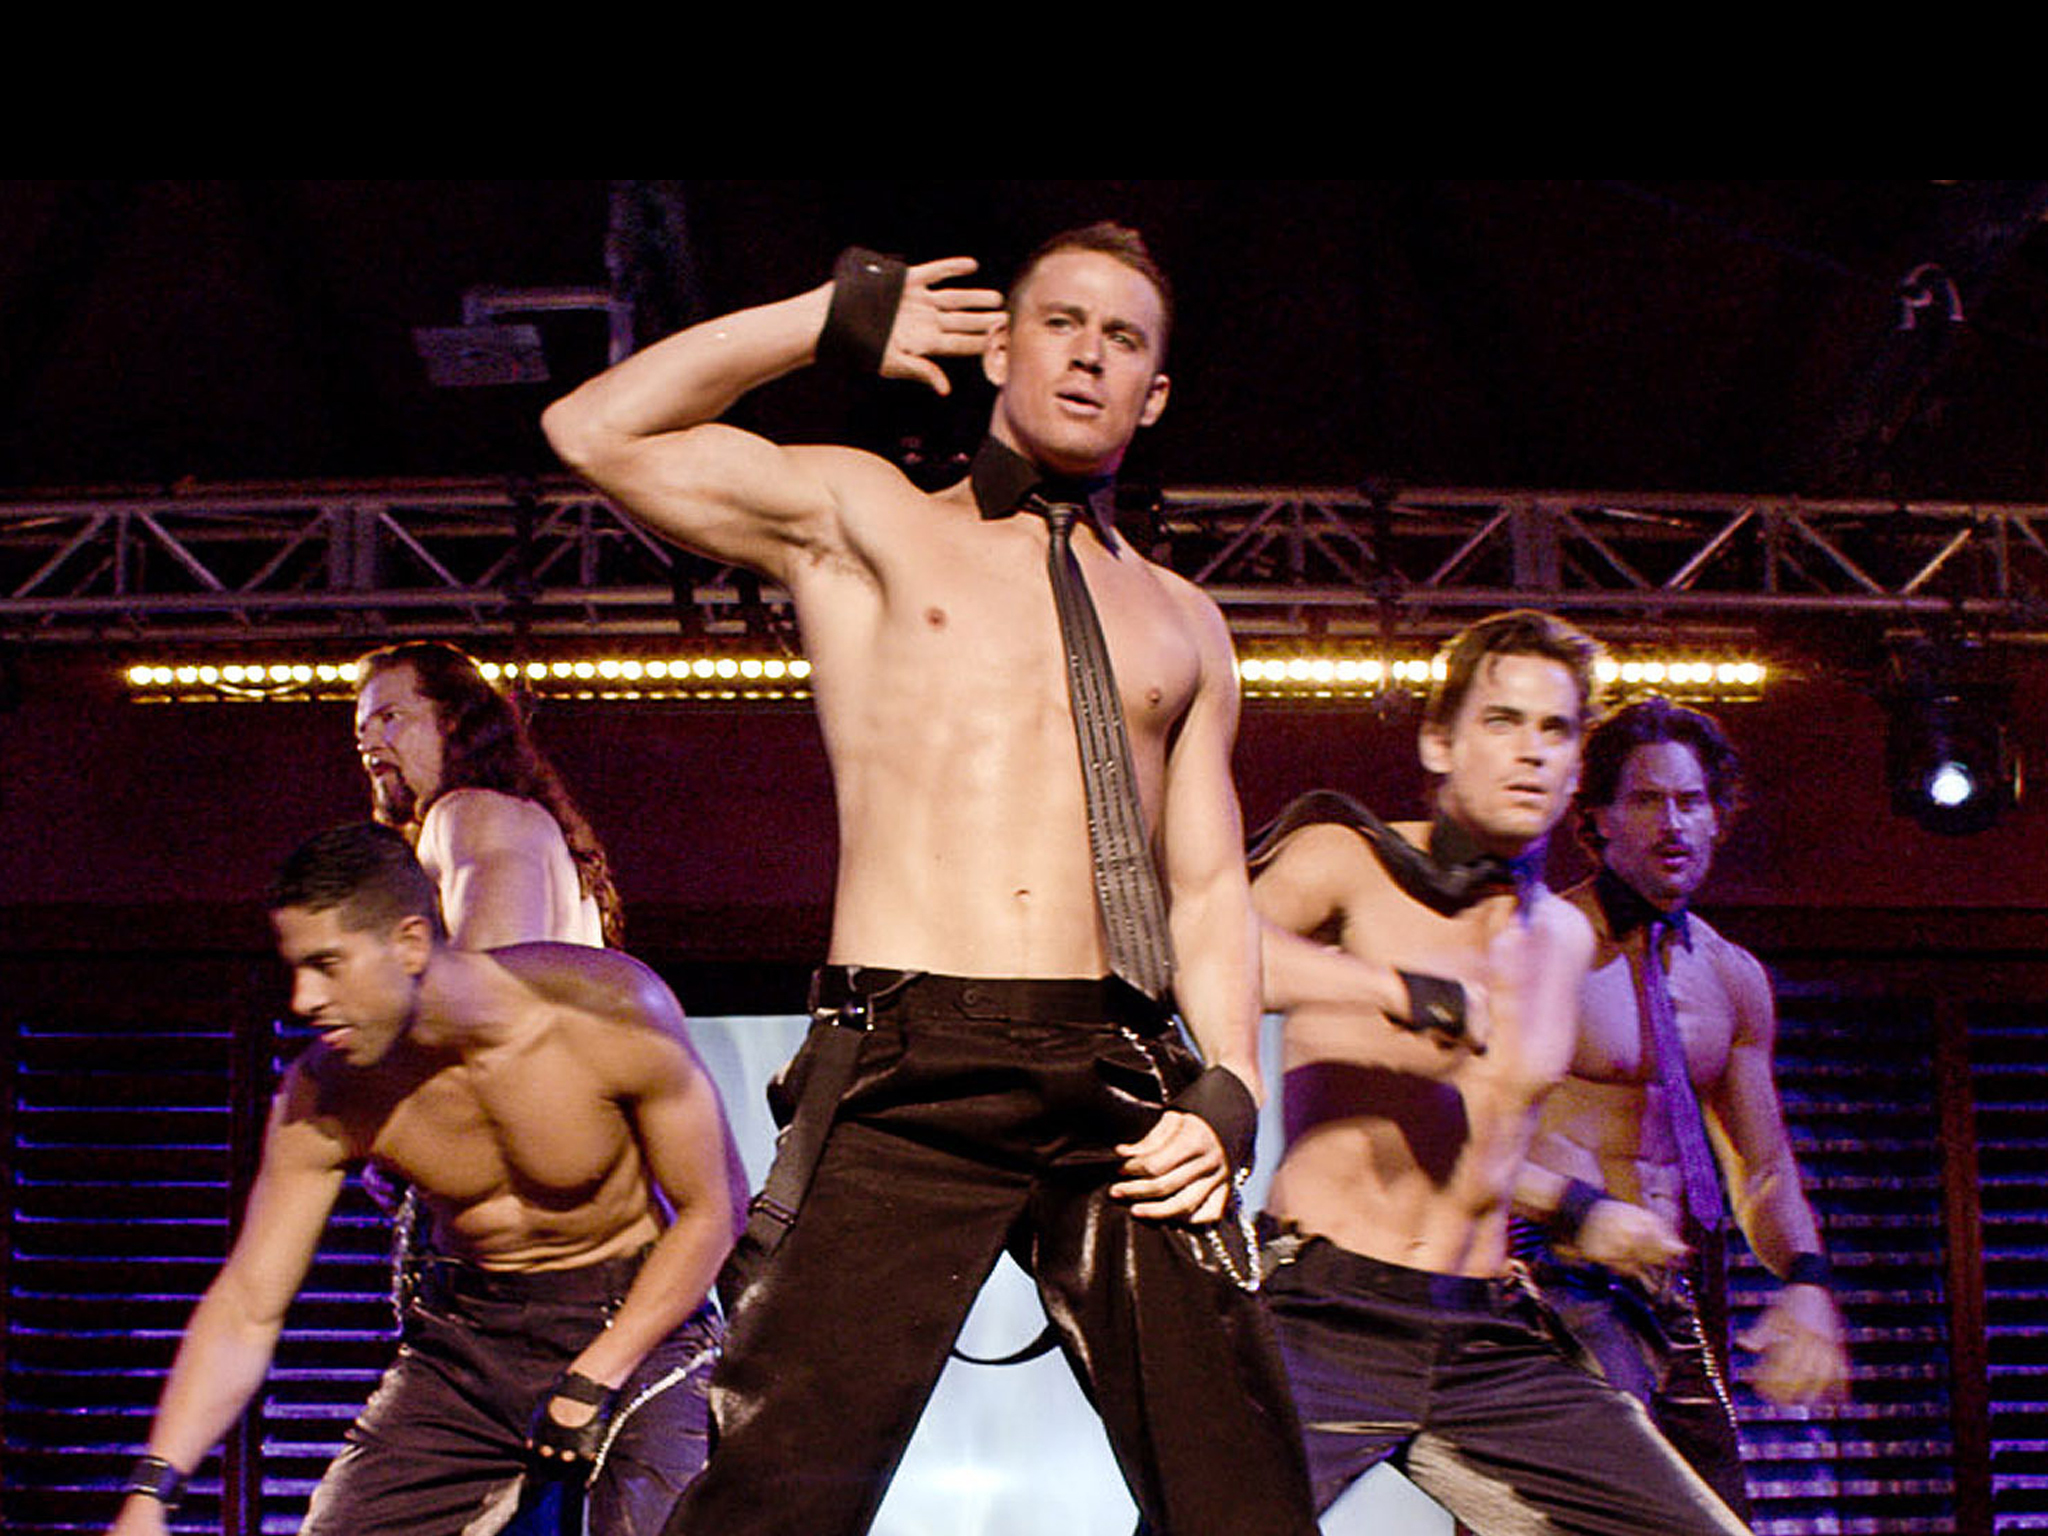 Channing Tatum's torso in Magic Mike